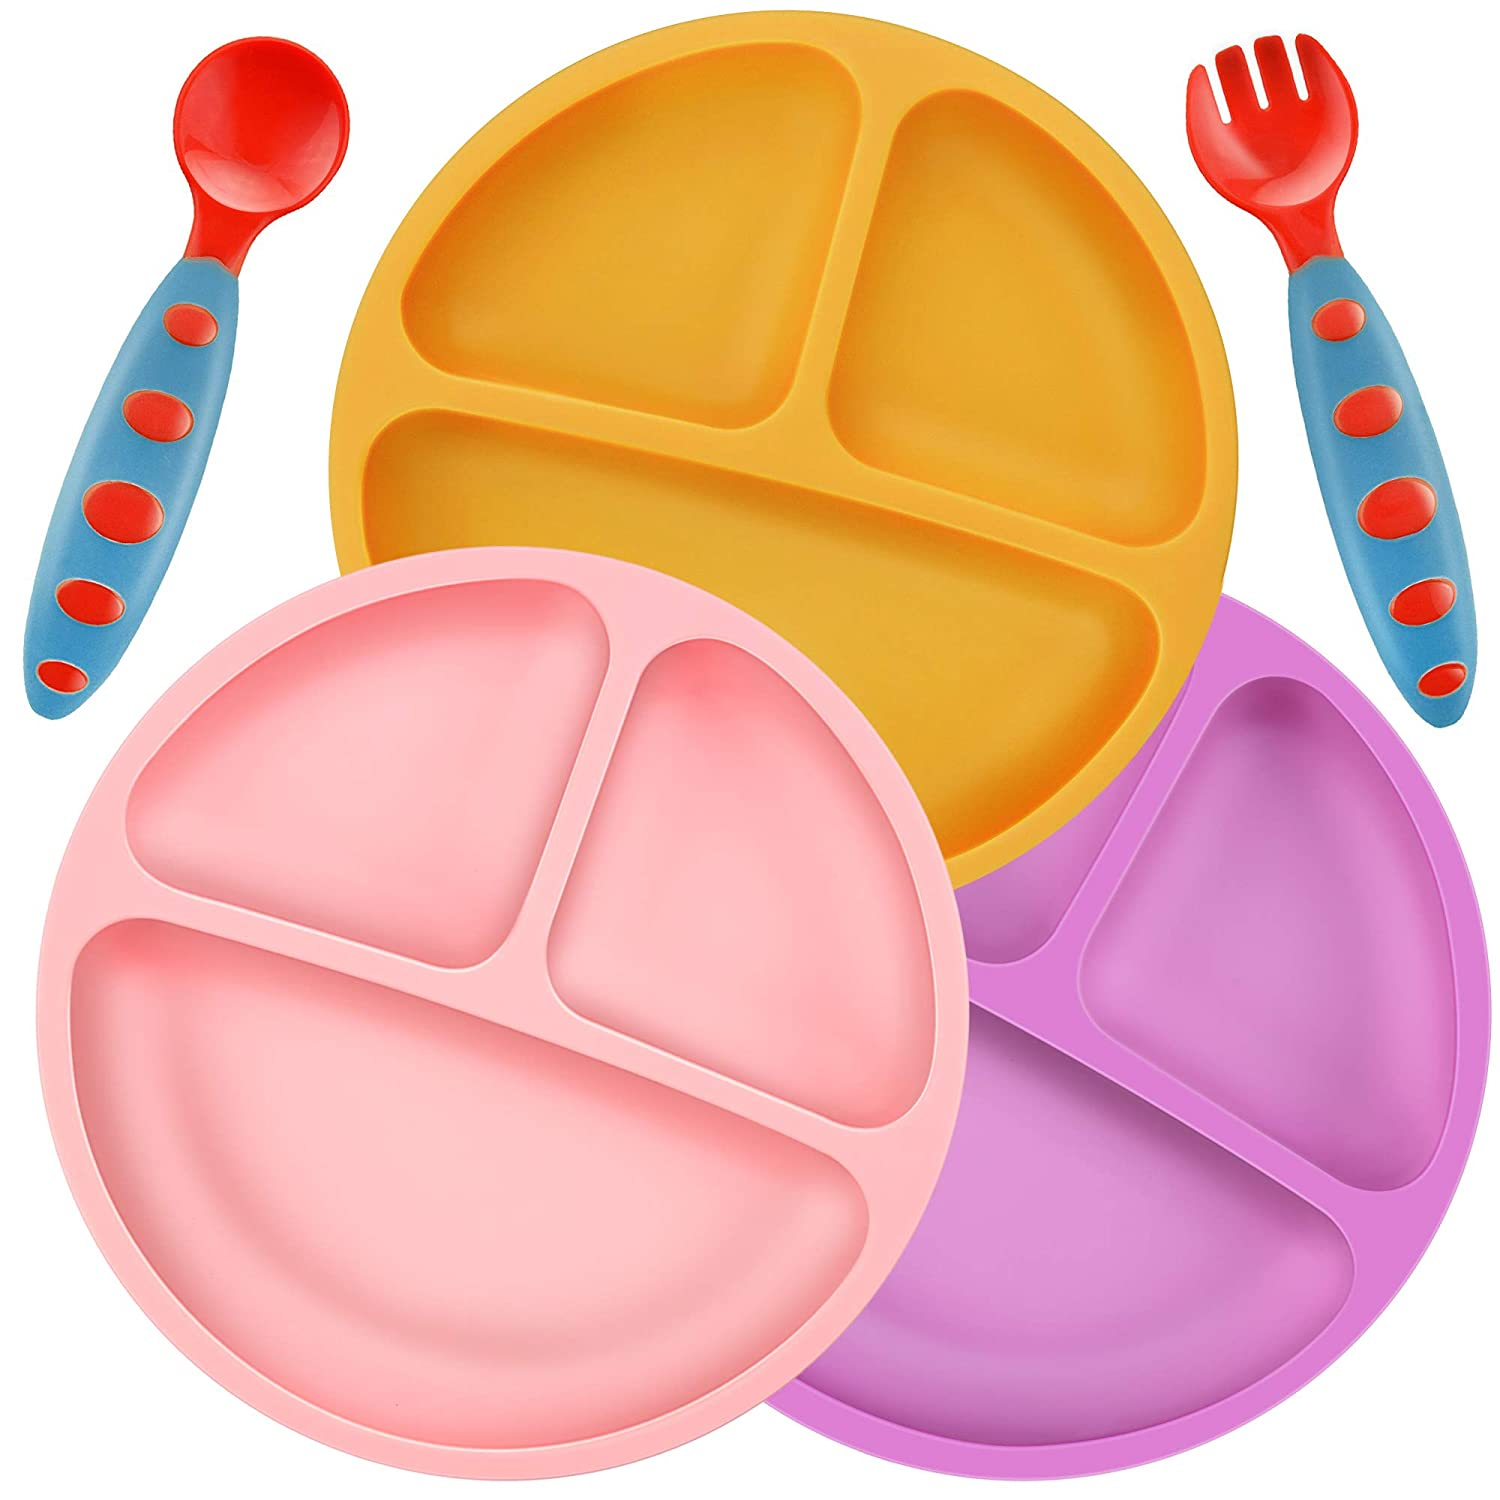 PandaEar Divided Unbreakable Silicone Baby and Toddler Plates - 3 Pack - Non-Slip - Dishwasher and Microwave Safe - FDA/LFGB Certified Silicone Pink Purple Yellow